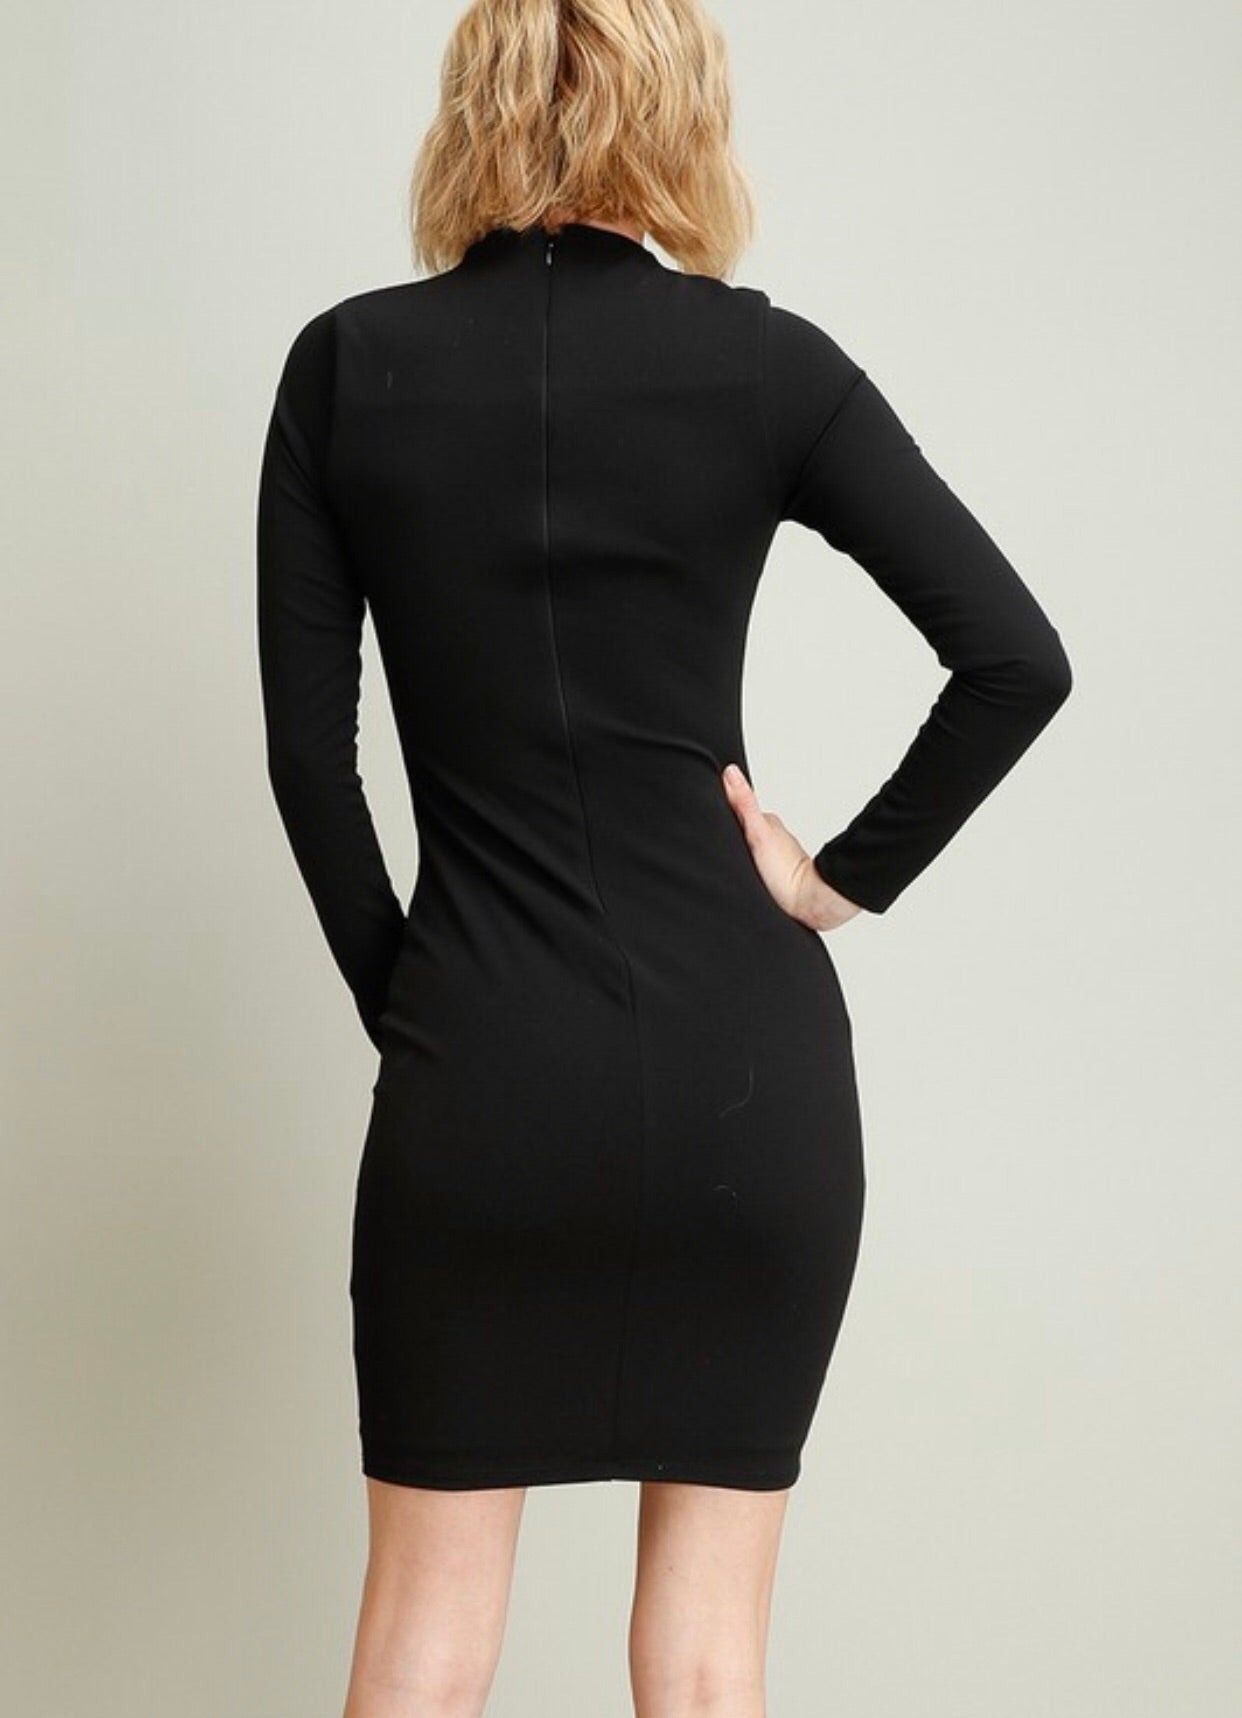 Black High Neck Fitted Dress